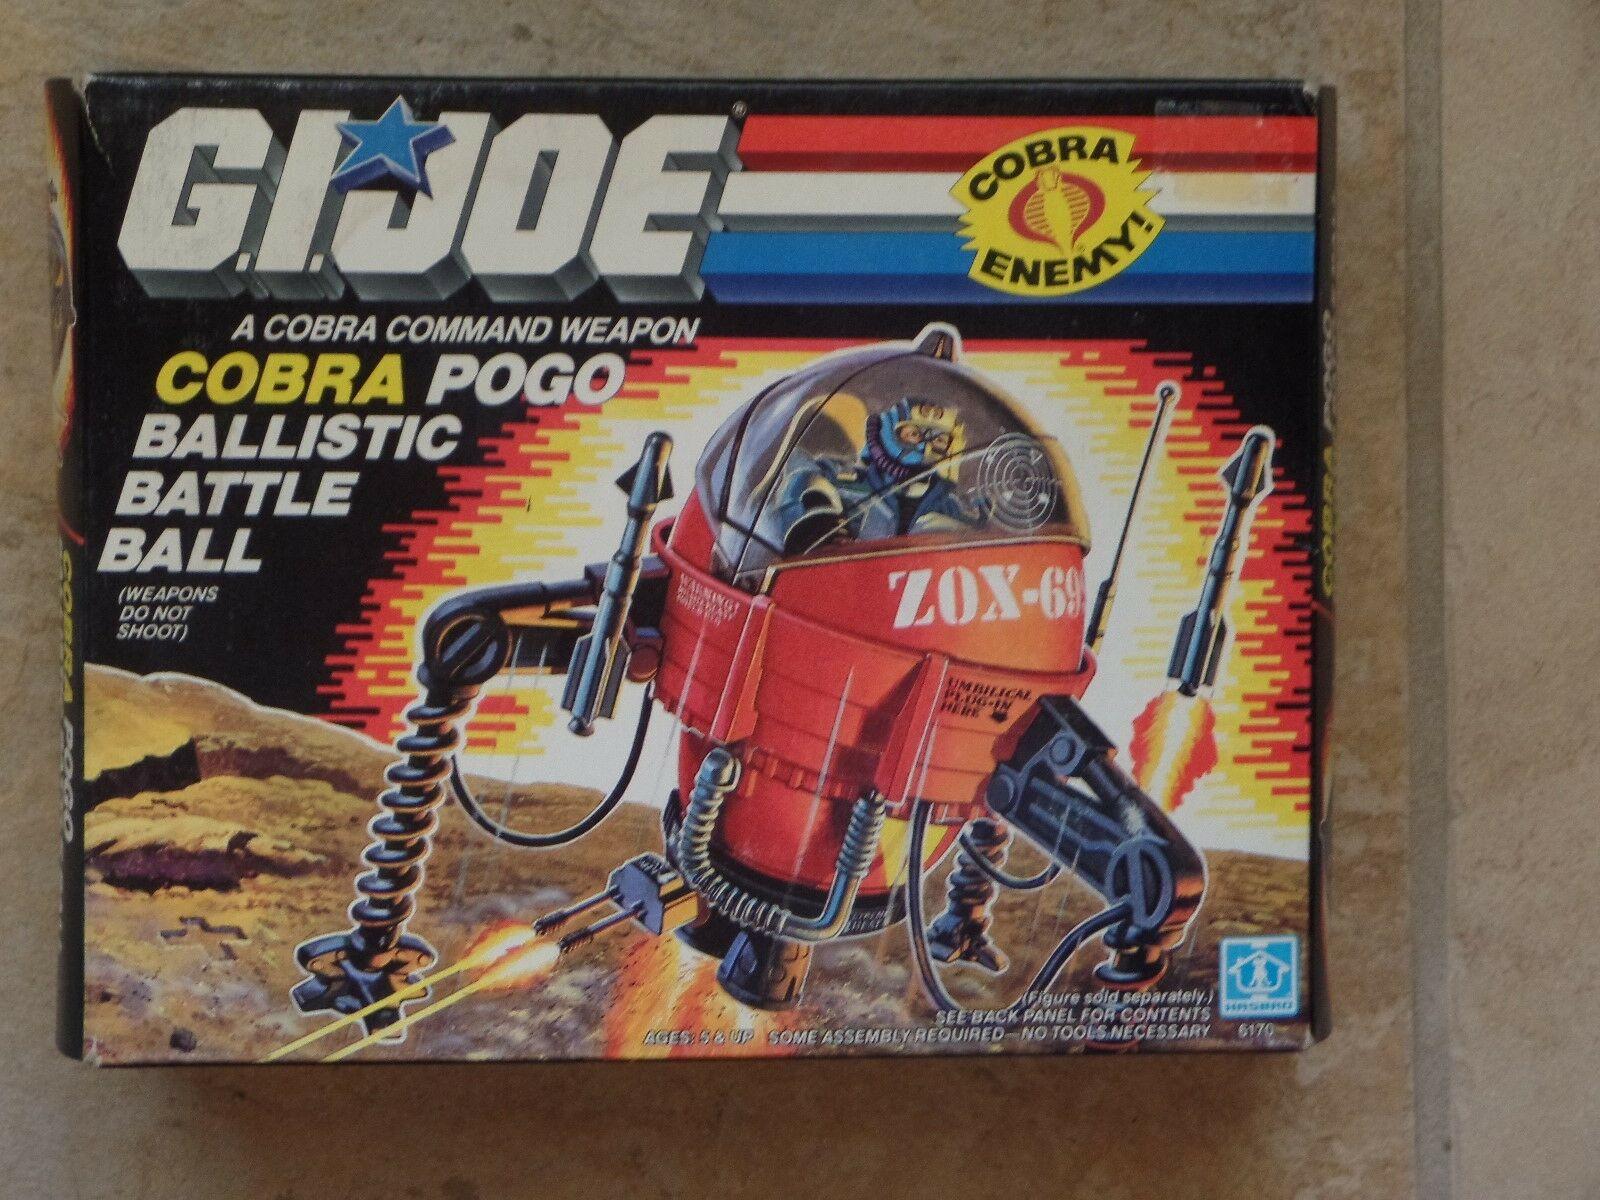 GI Joe COBRA POGO Ballistic Weapon 1987 VGC New in Opened Box - SEALED Contents